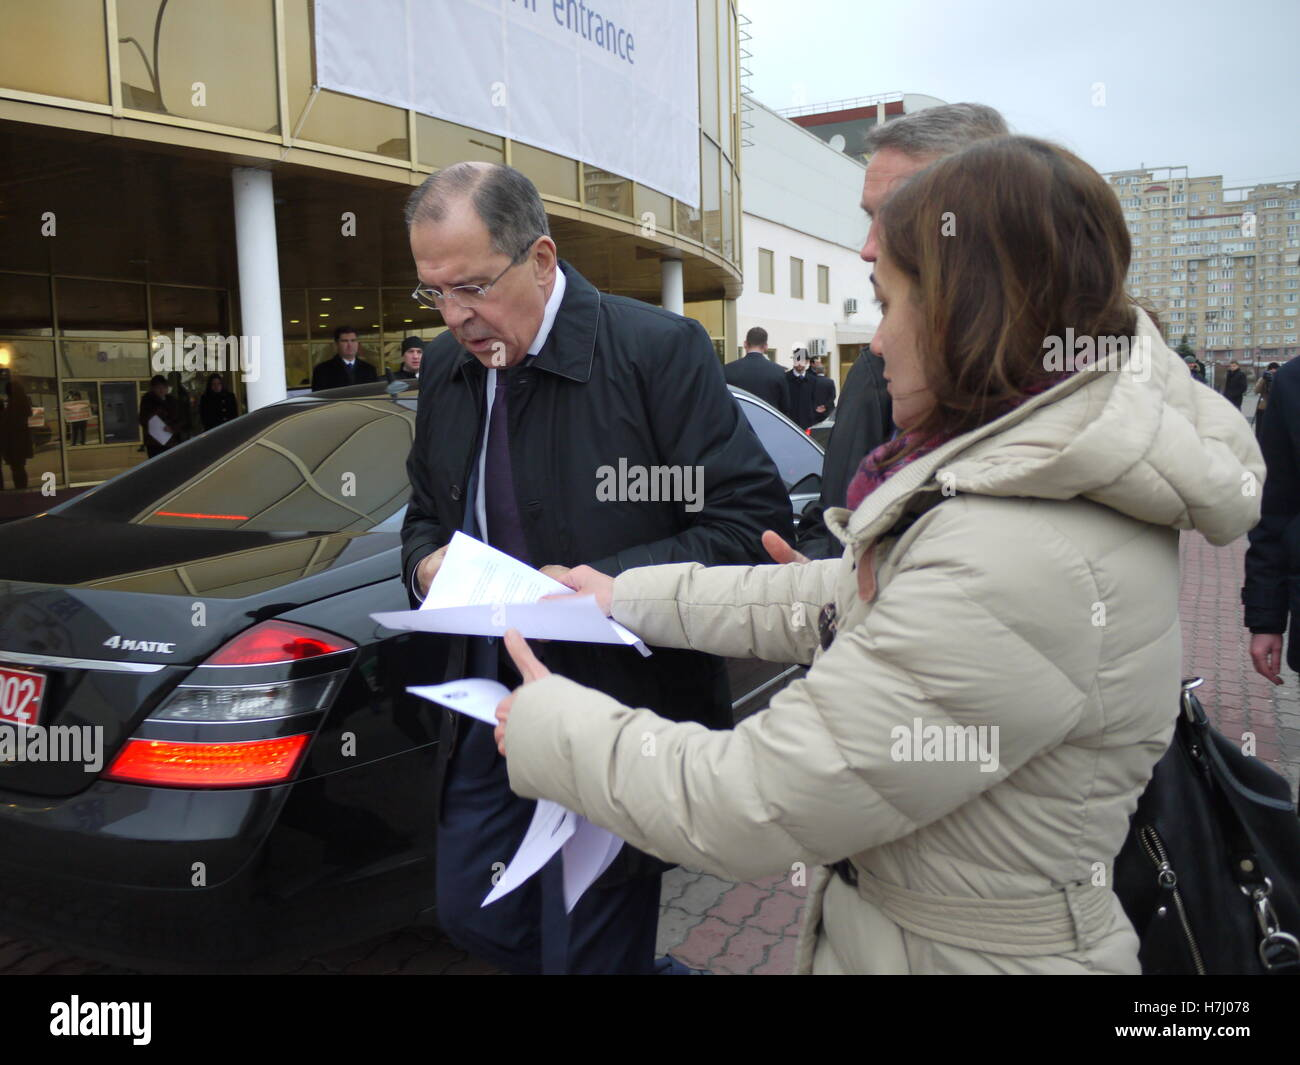 Russian foreign minister Serguei Lavrov while arriving in Kiev, Ukraine, during first day of revolution - Stock Image